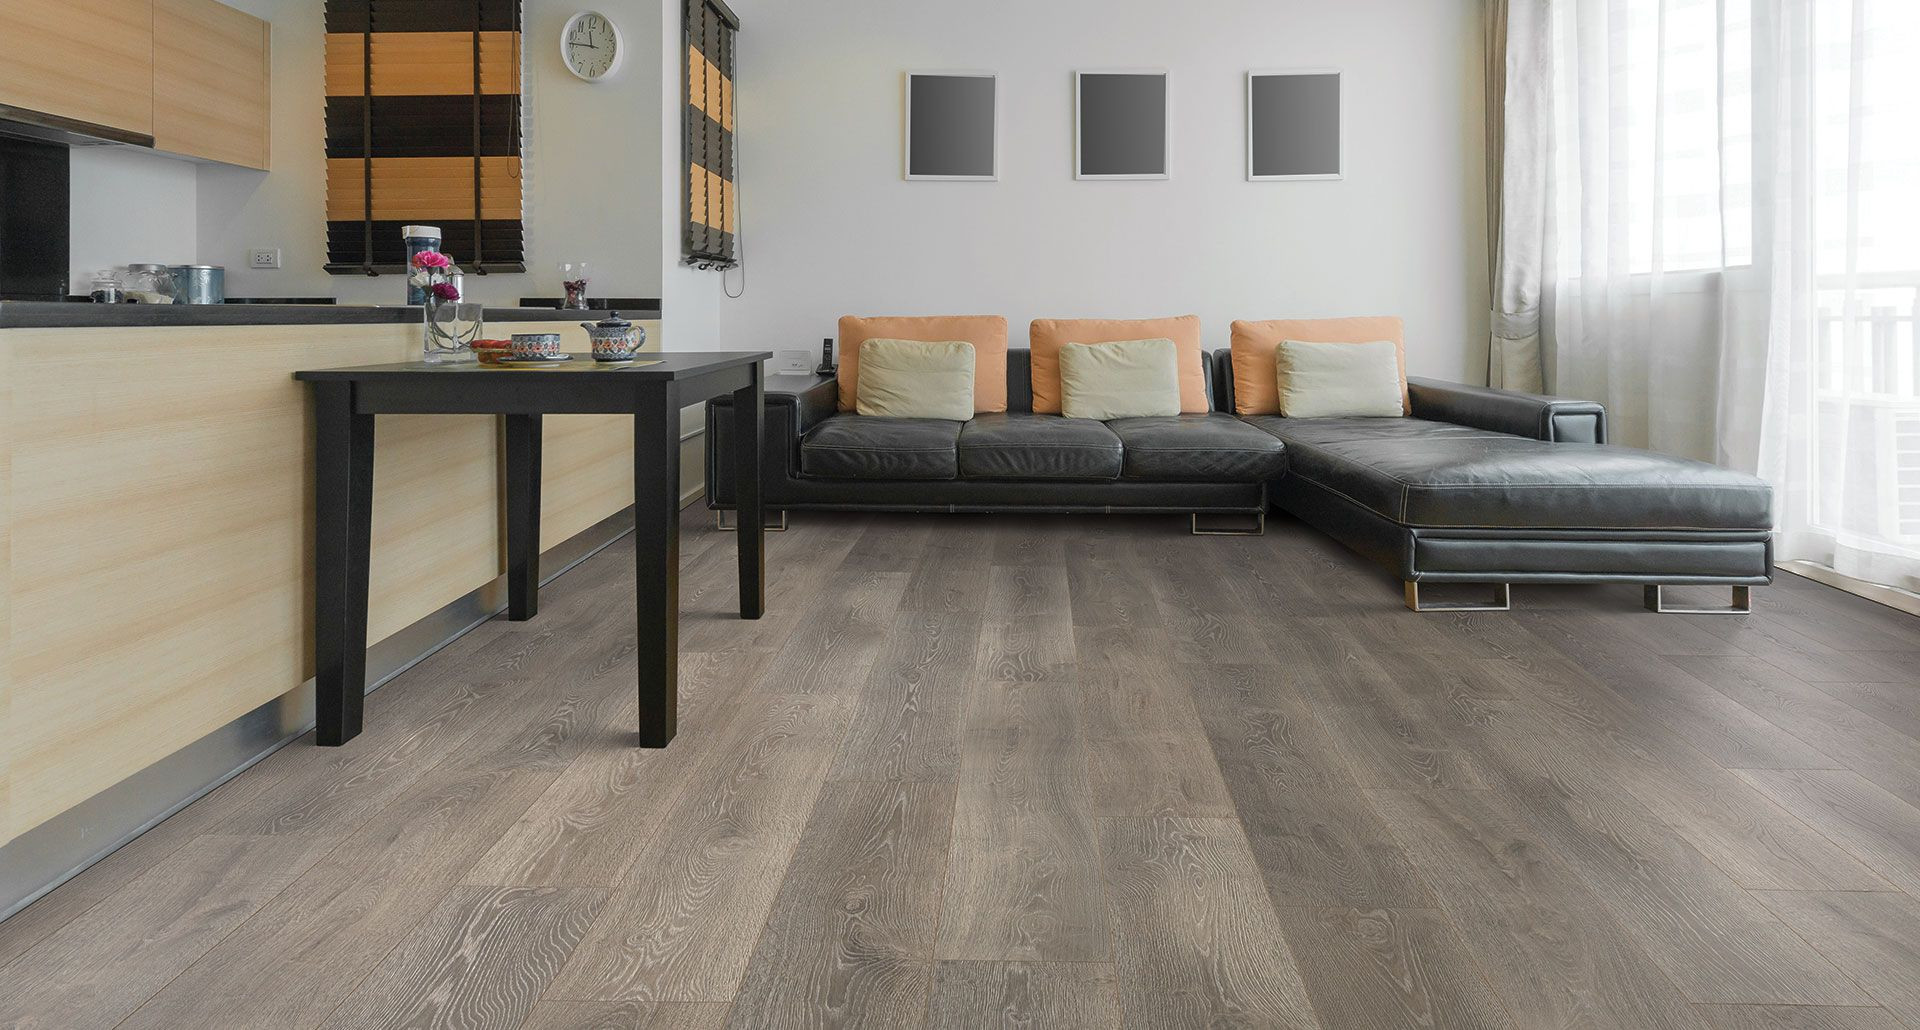 mills hardwood flooring bainbridge of innovative pergo timbercraft laminate flooring with a series of regarding innovative pergo timbercraft laminate flooring with a series of unique features that create an authentic hardwood look as well as make it durable and easy